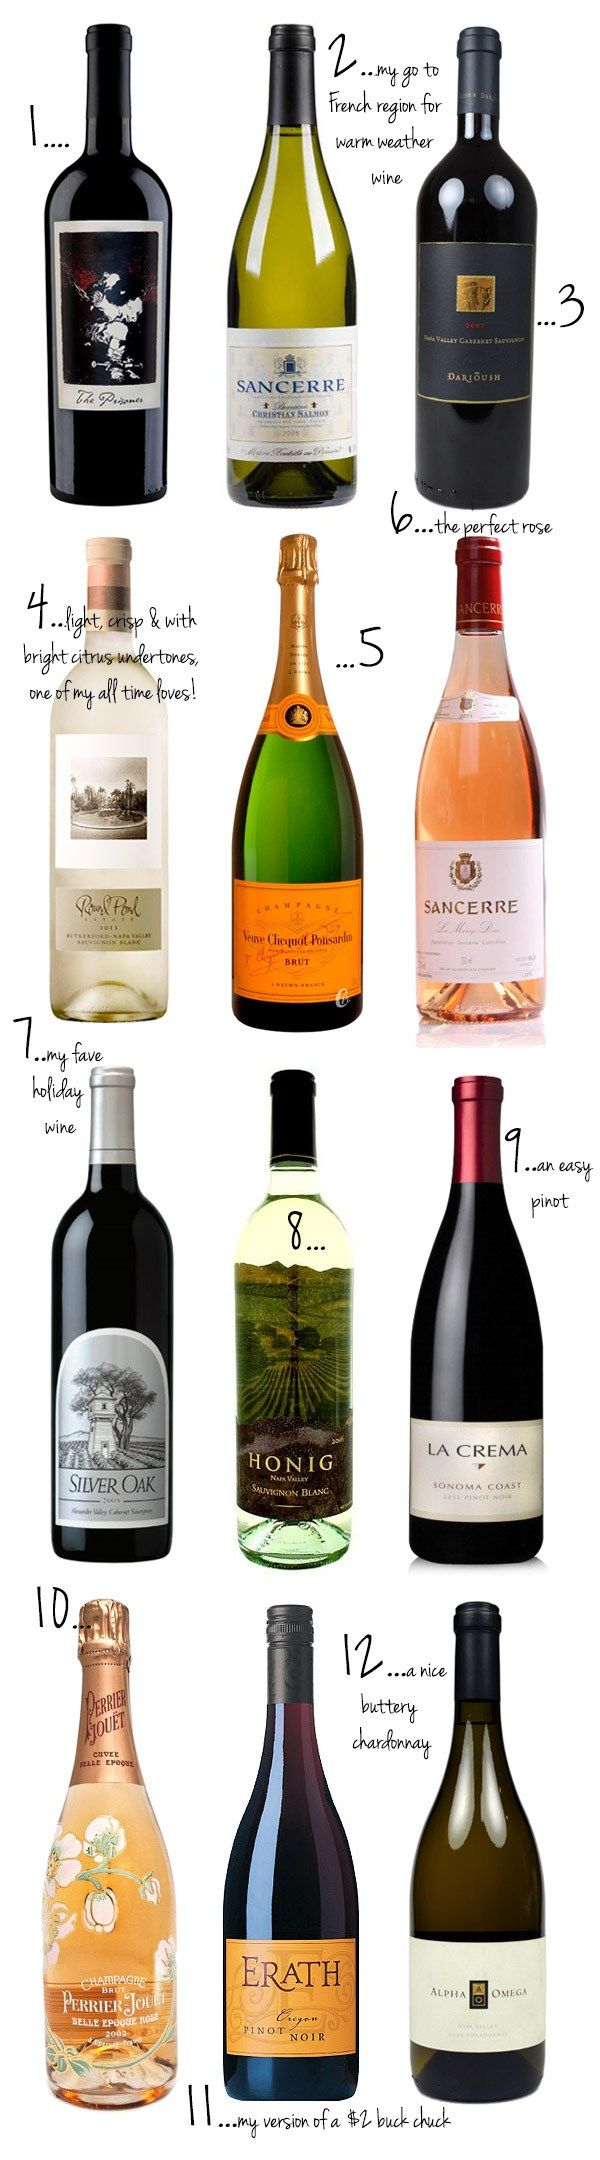 Best wines for entertaining.